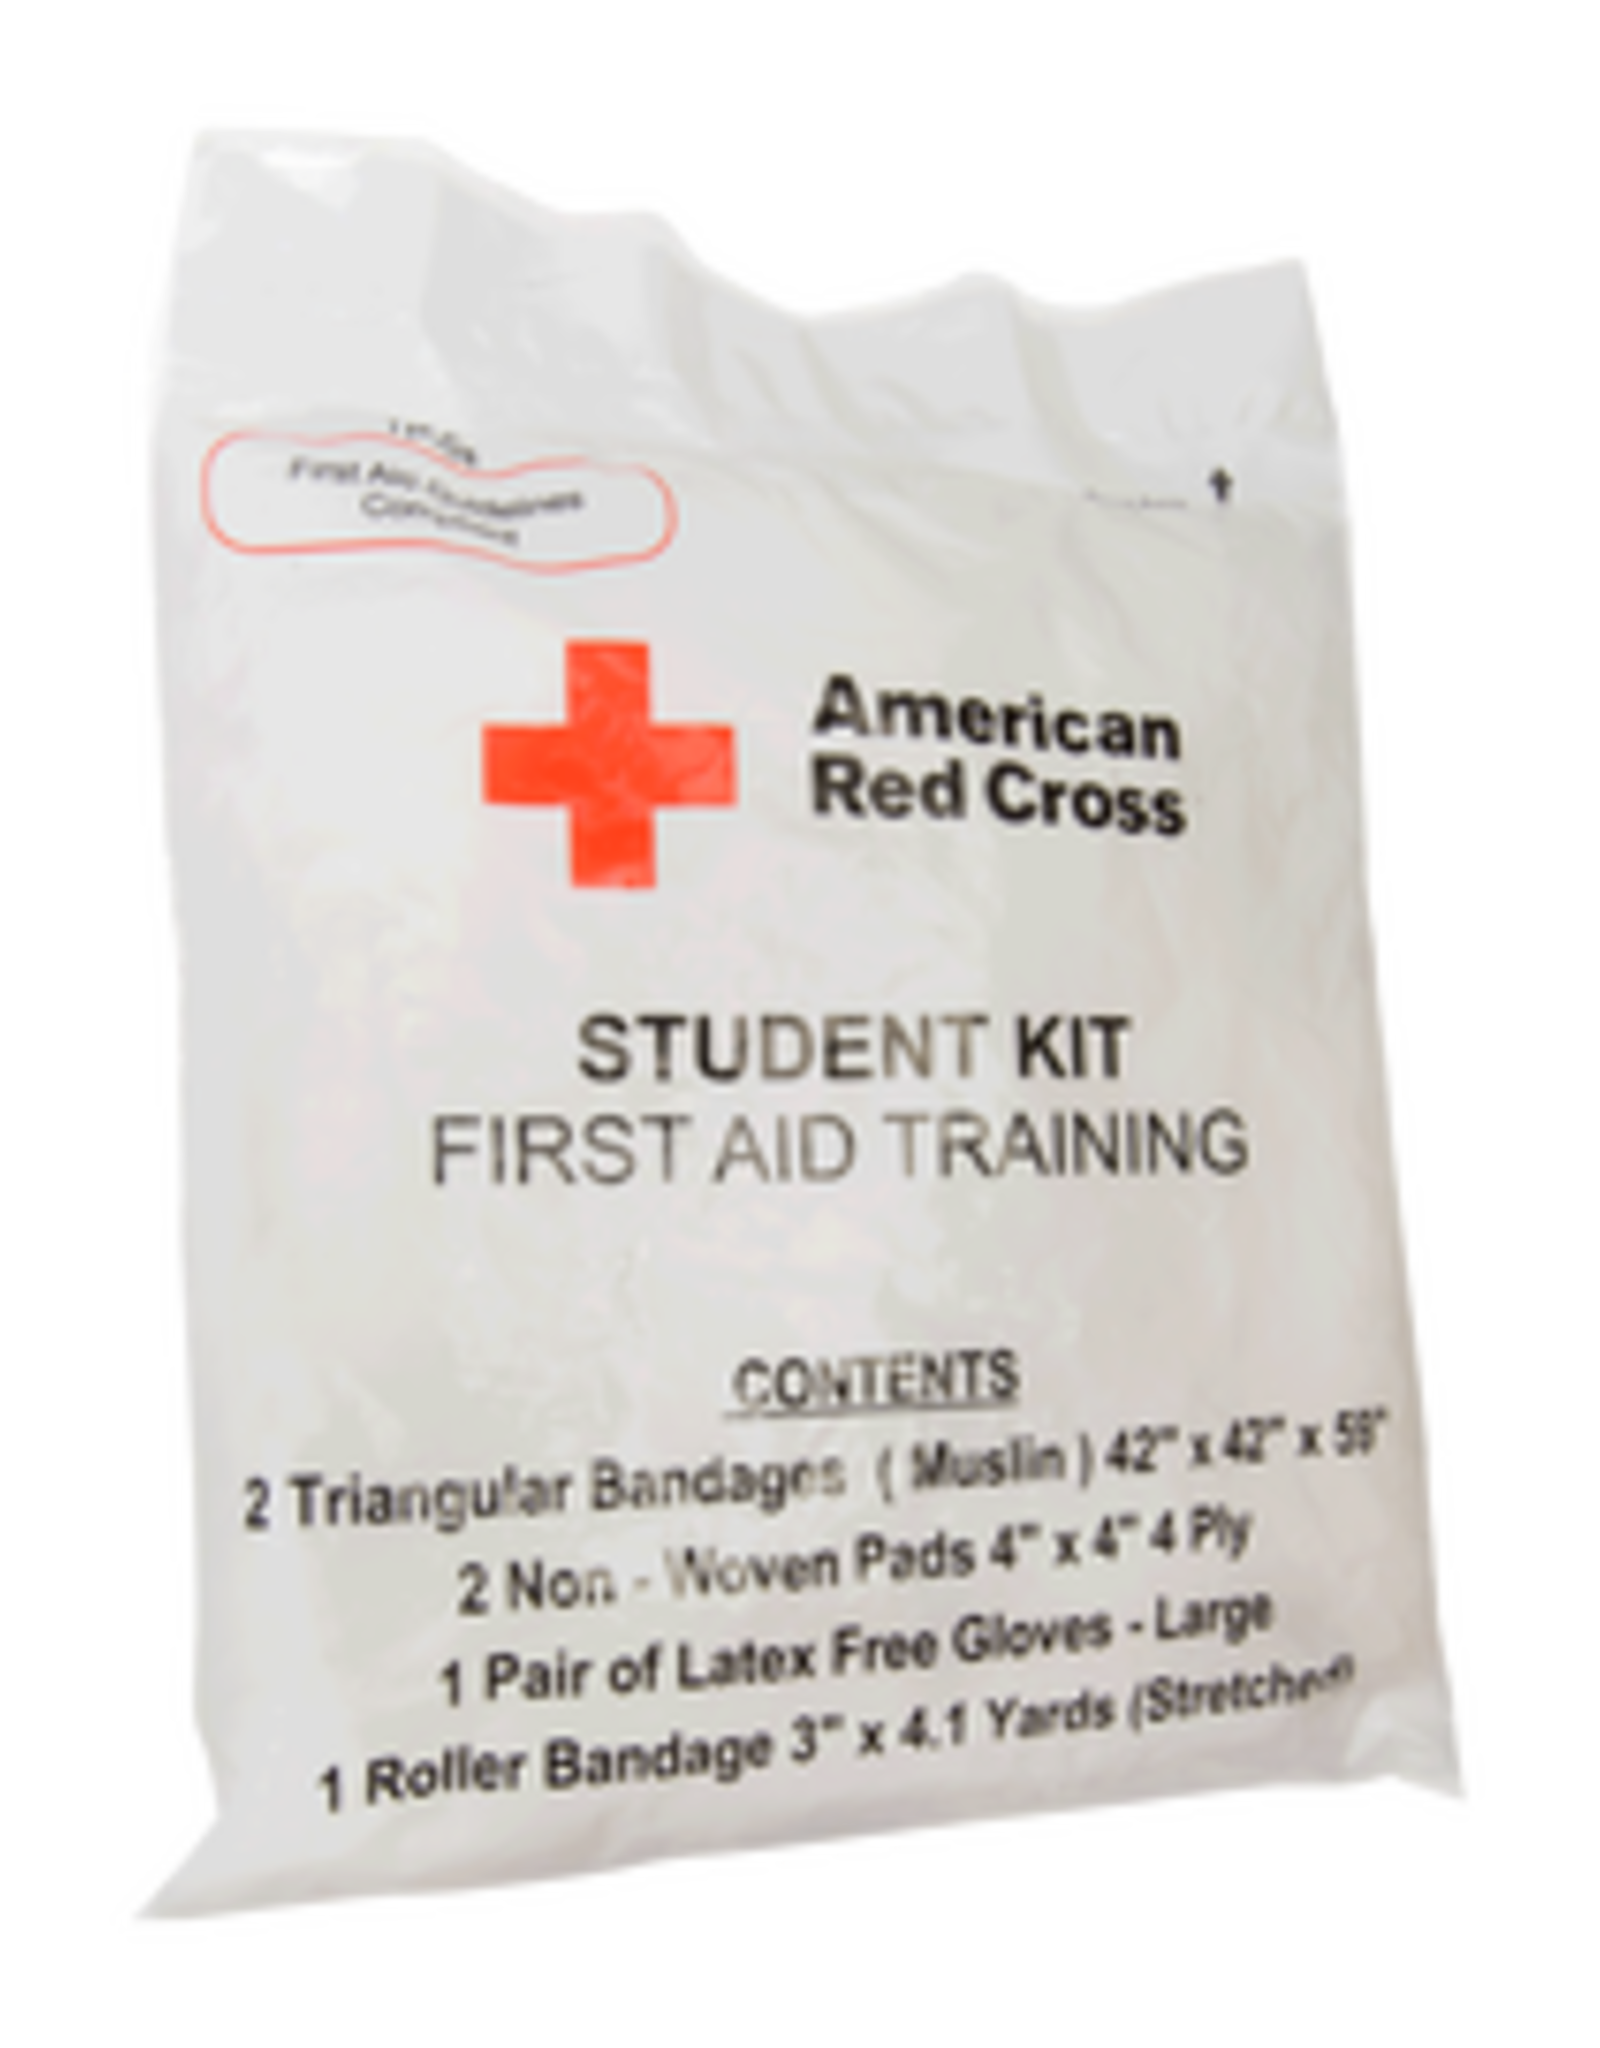 First Aid Training Student Kit